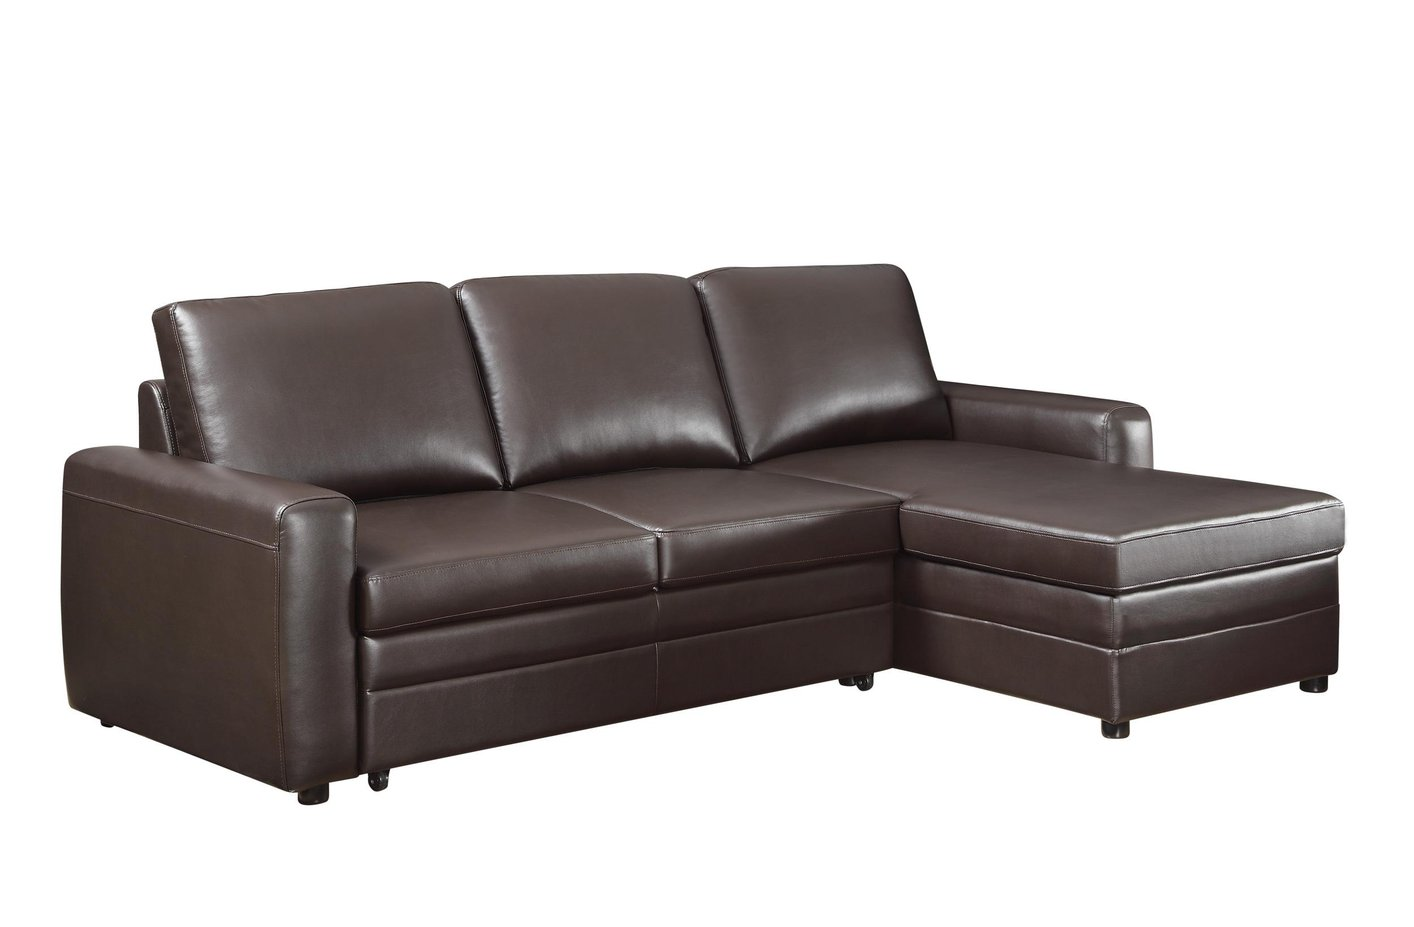 leather sectional sofa brown photo - 2